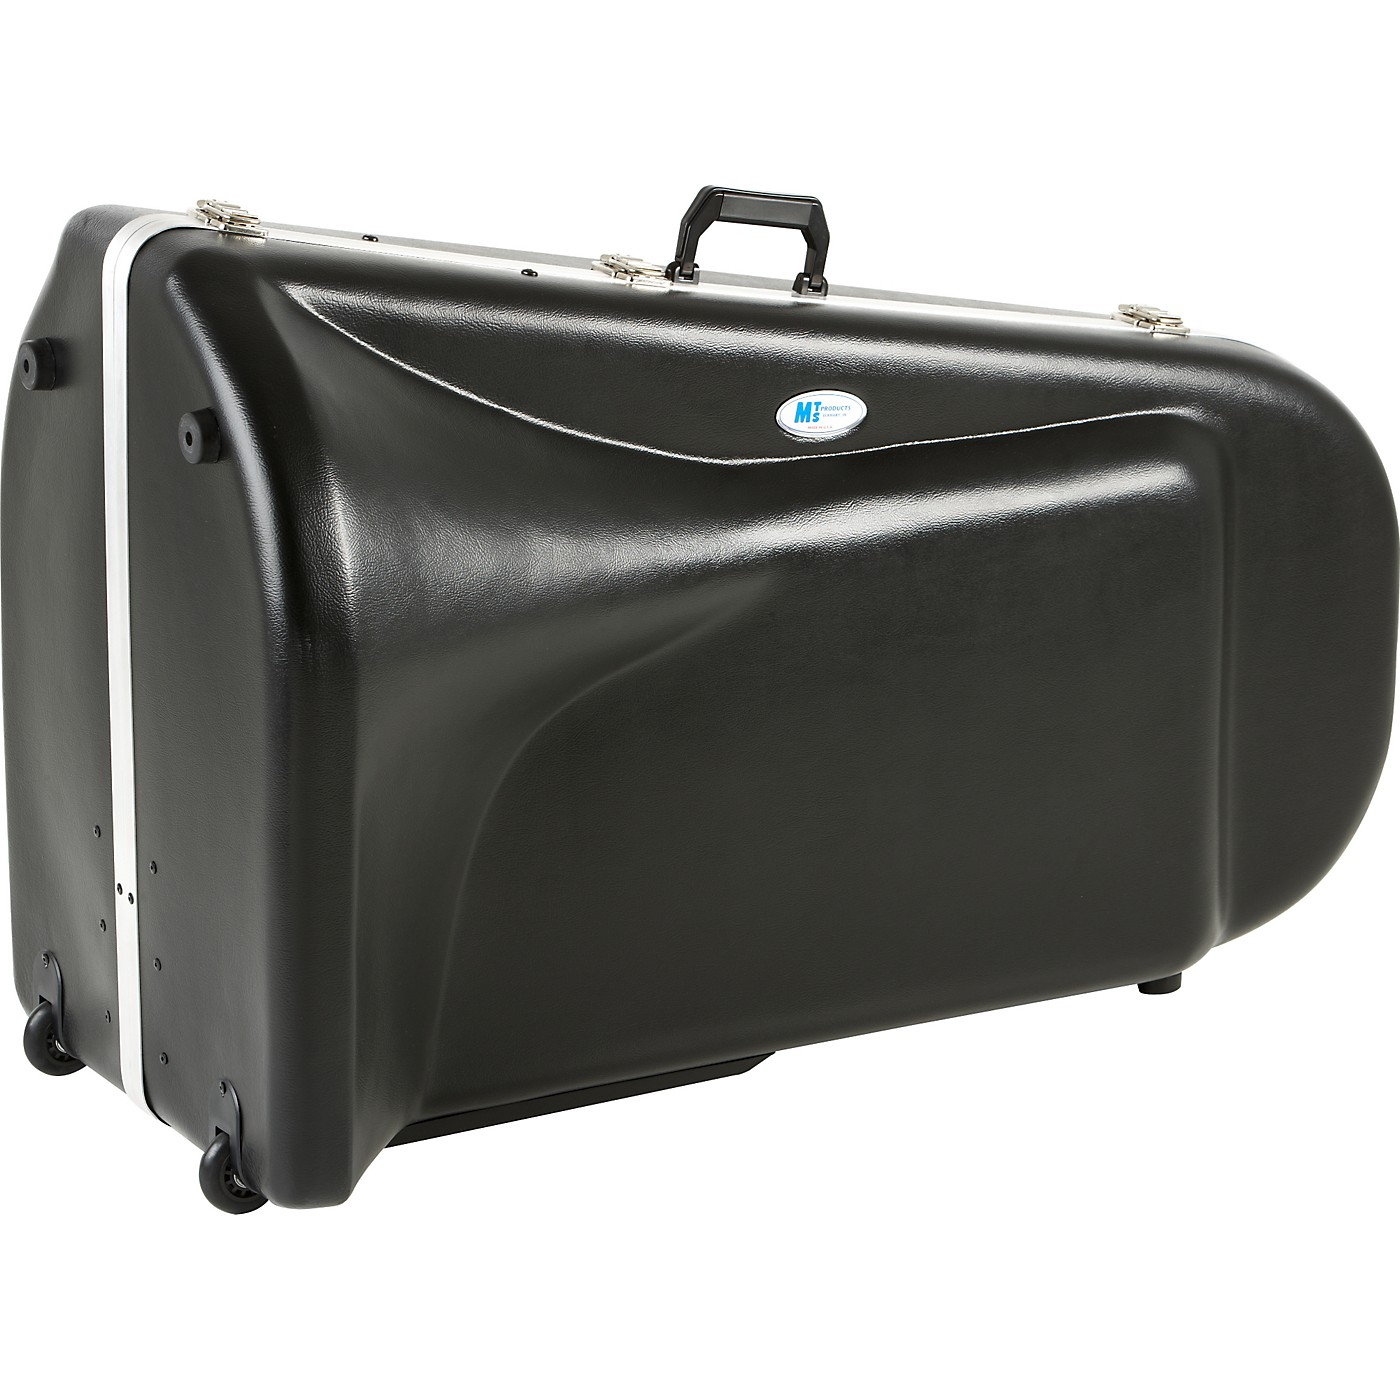 MTS Products 1203V Large Frame Top Action Tuba Case thumbnail